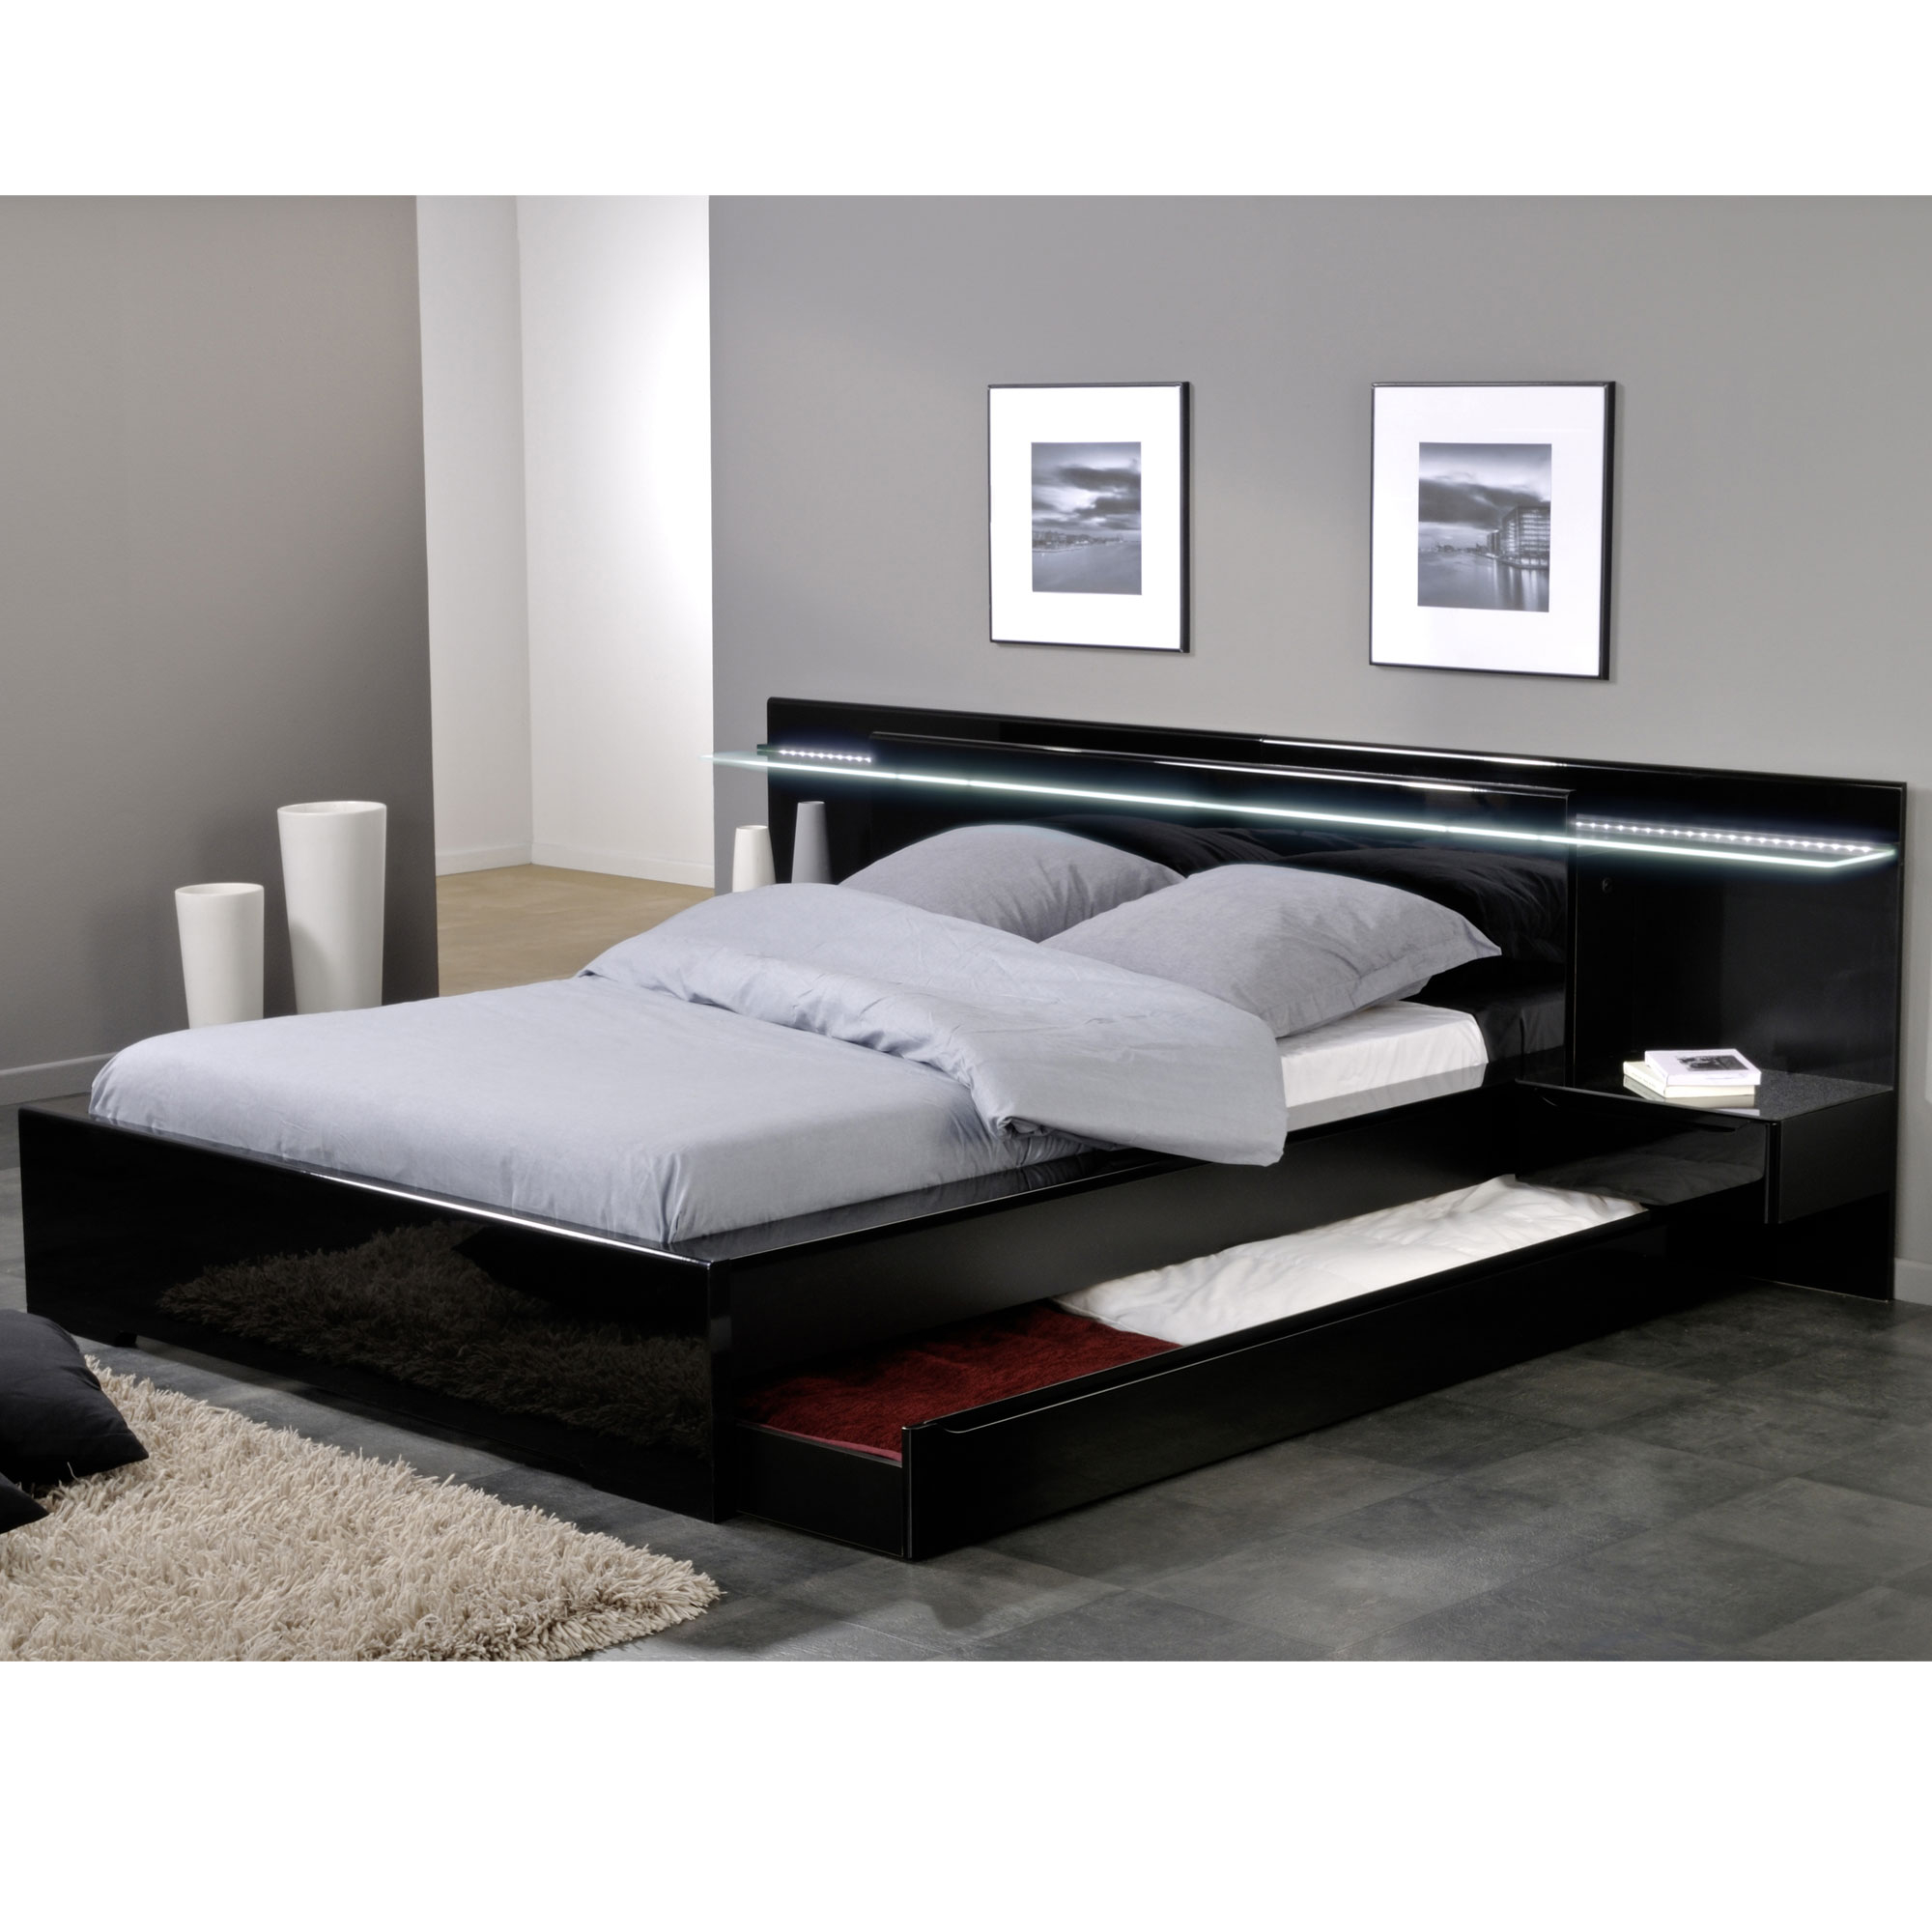 ensemble lit 140 x 190 cm environnement lumineux avec 2. Black Bedroom Furniture Sets. Home Design Ideas